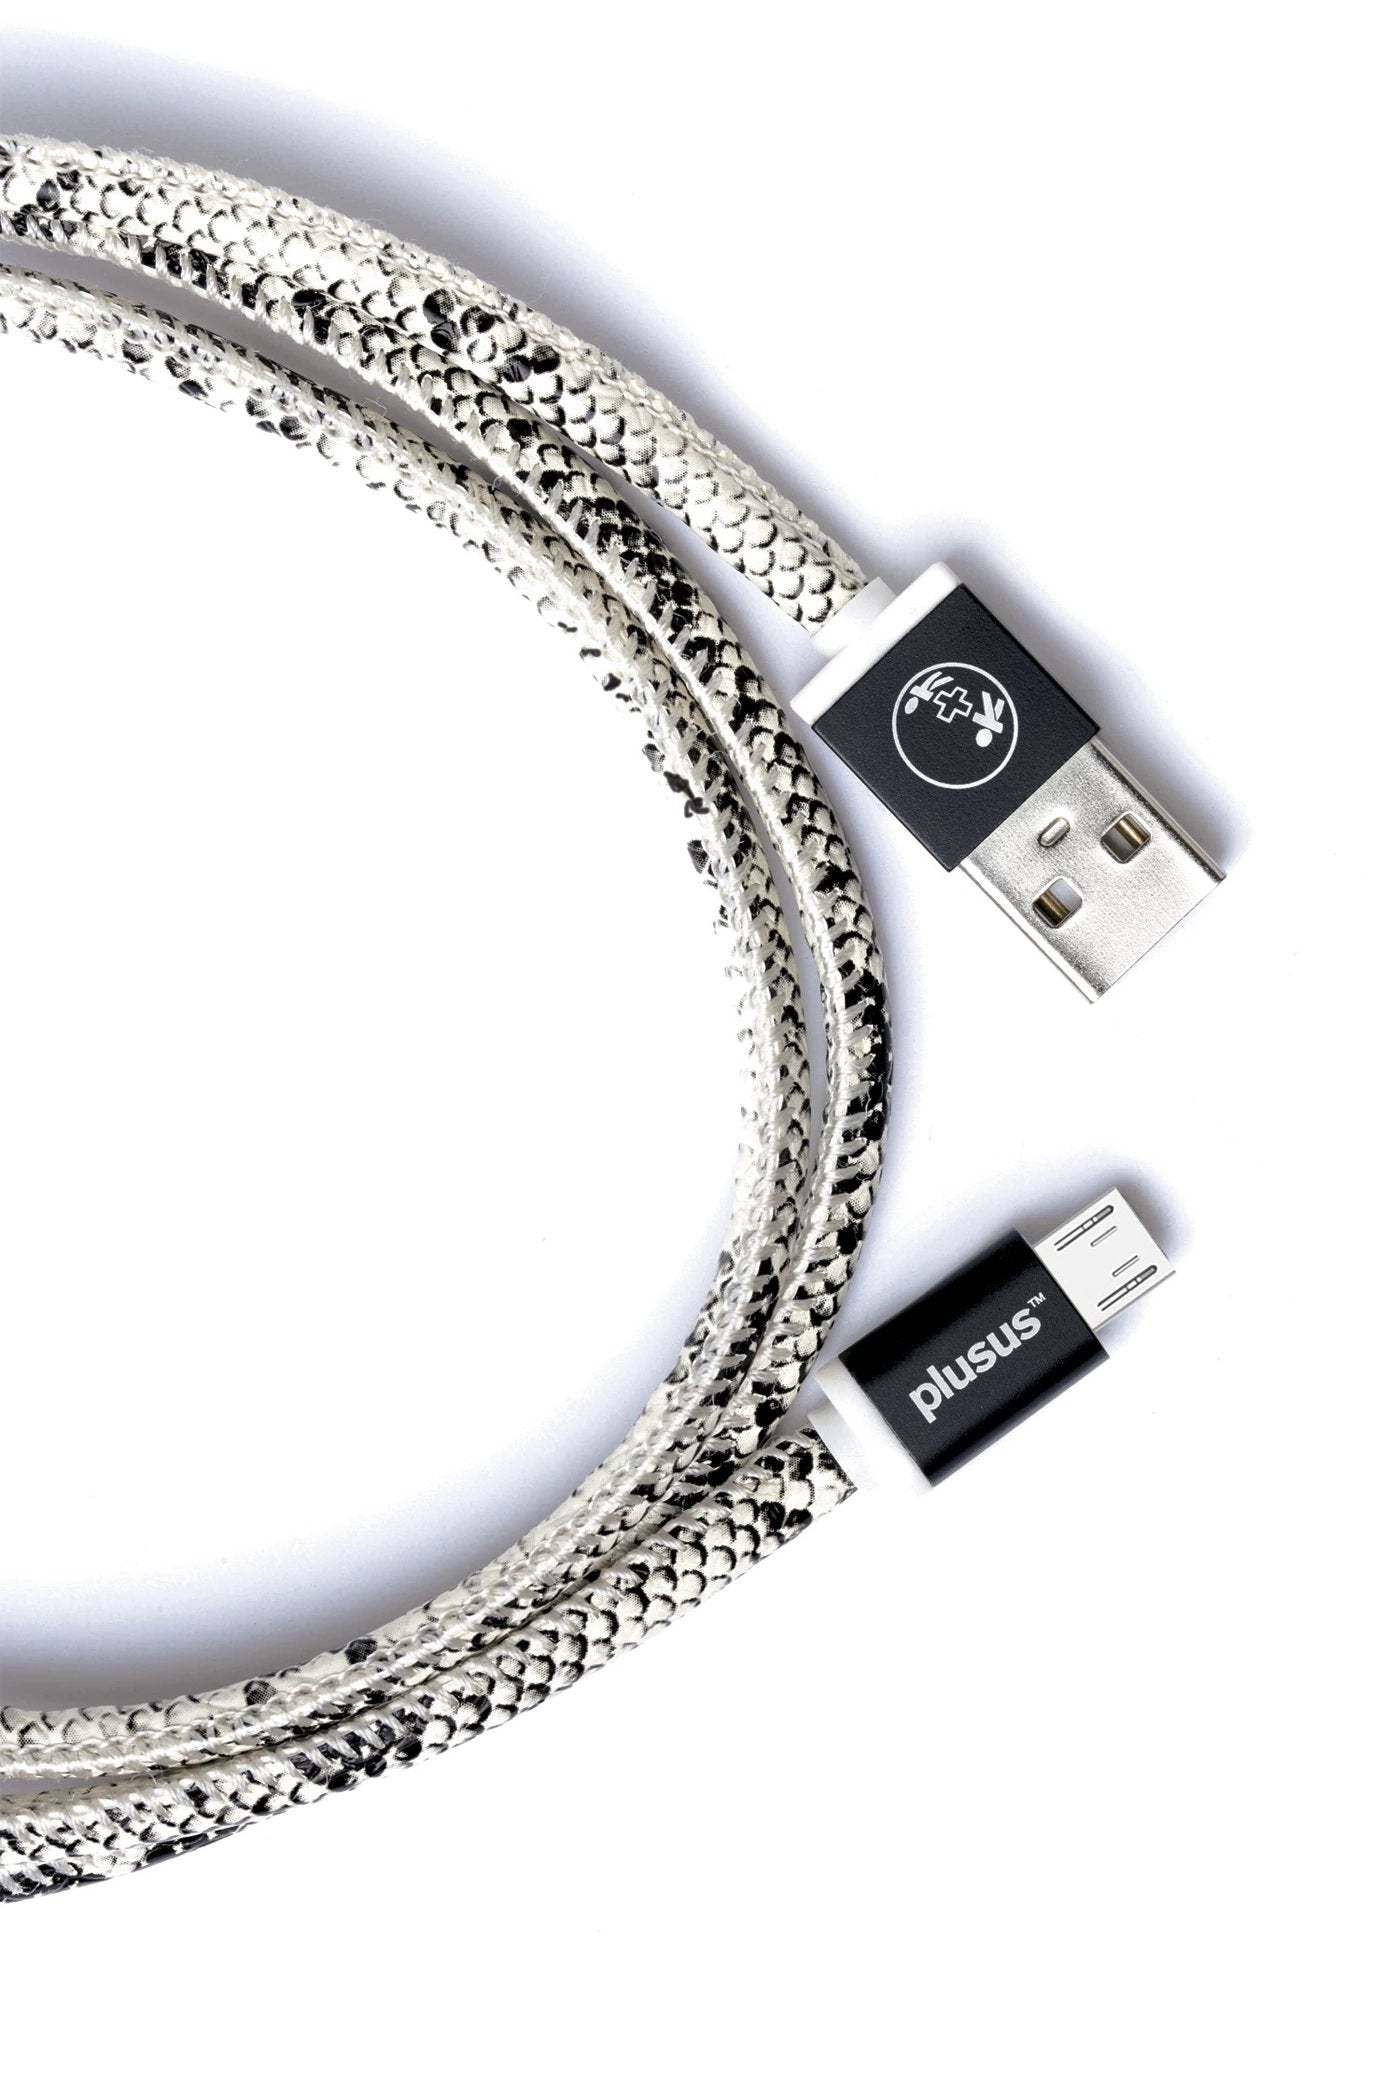 LifeStar Charging Cable - Snake Bite - Micro USB to USB